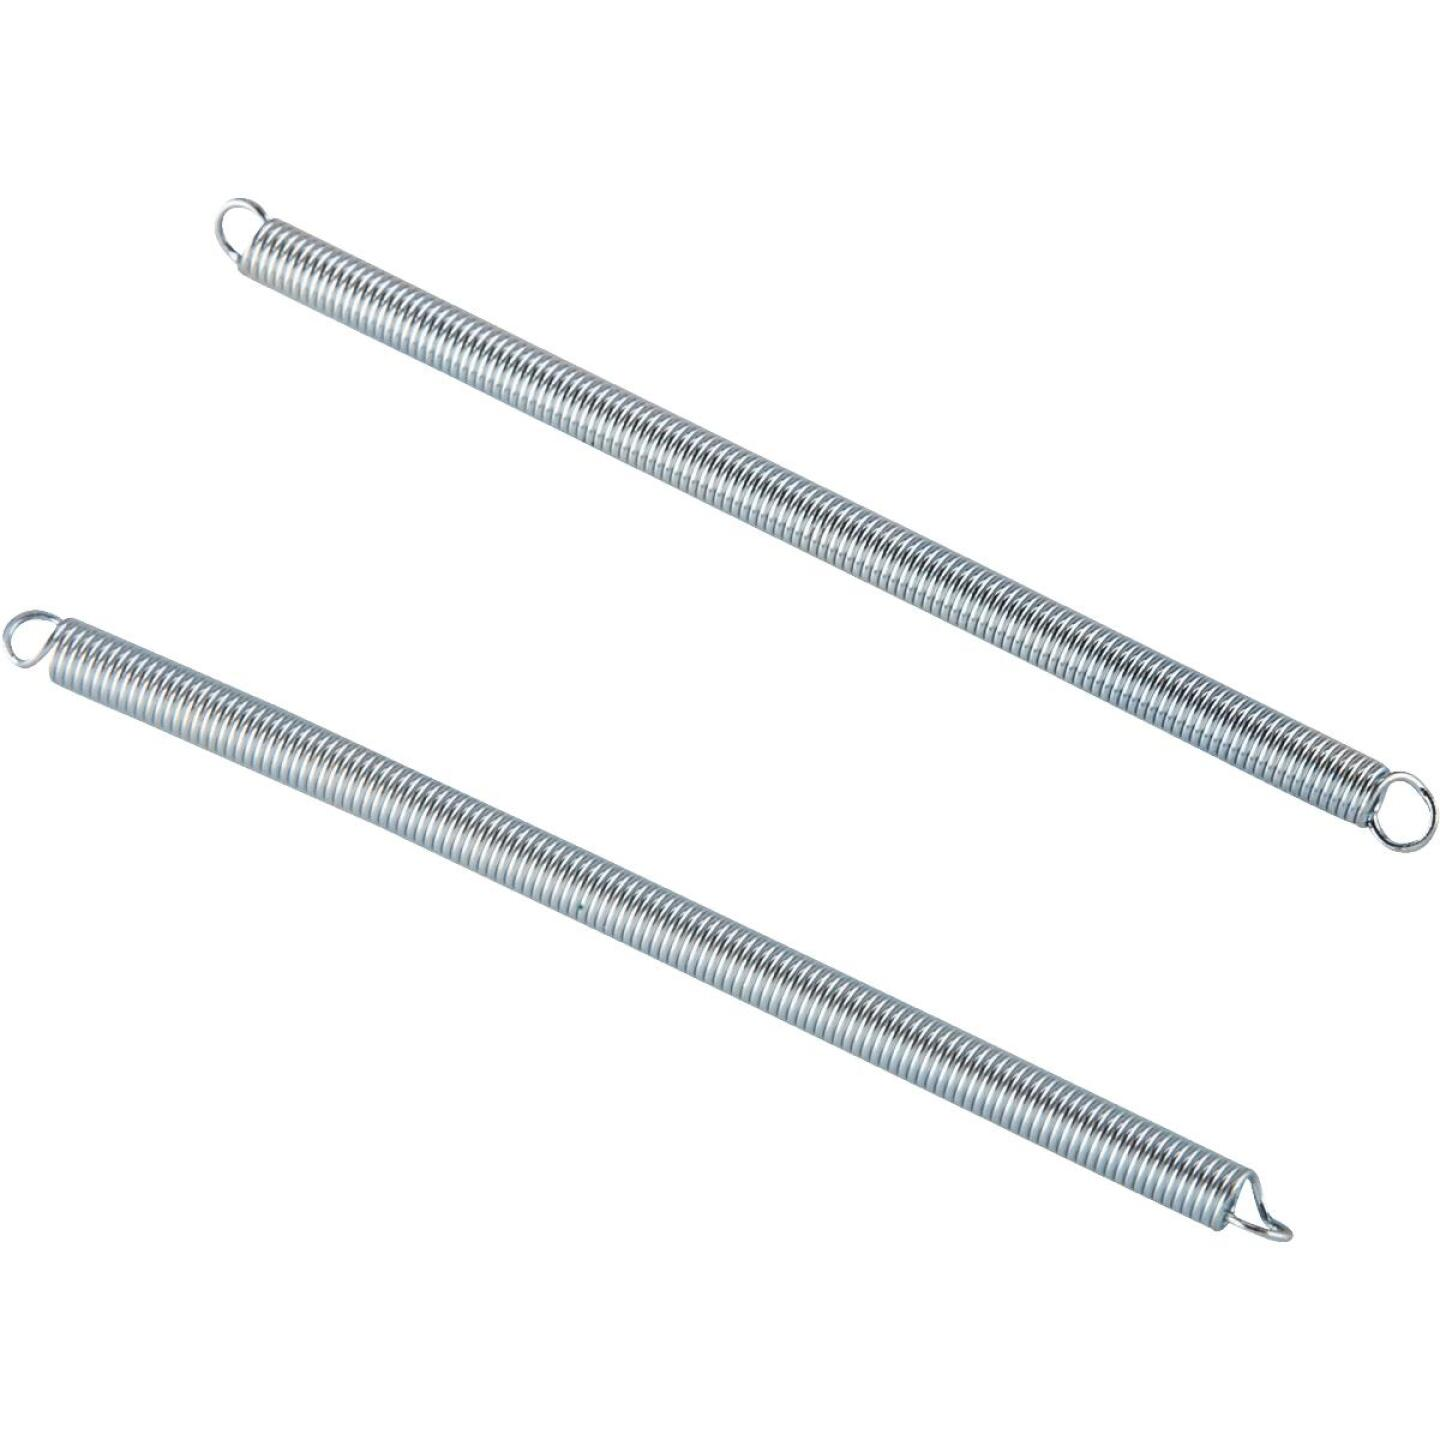 Century Spring 8-1/2 In. x 5/8 In. Extension Spring (1 Count) Image 1